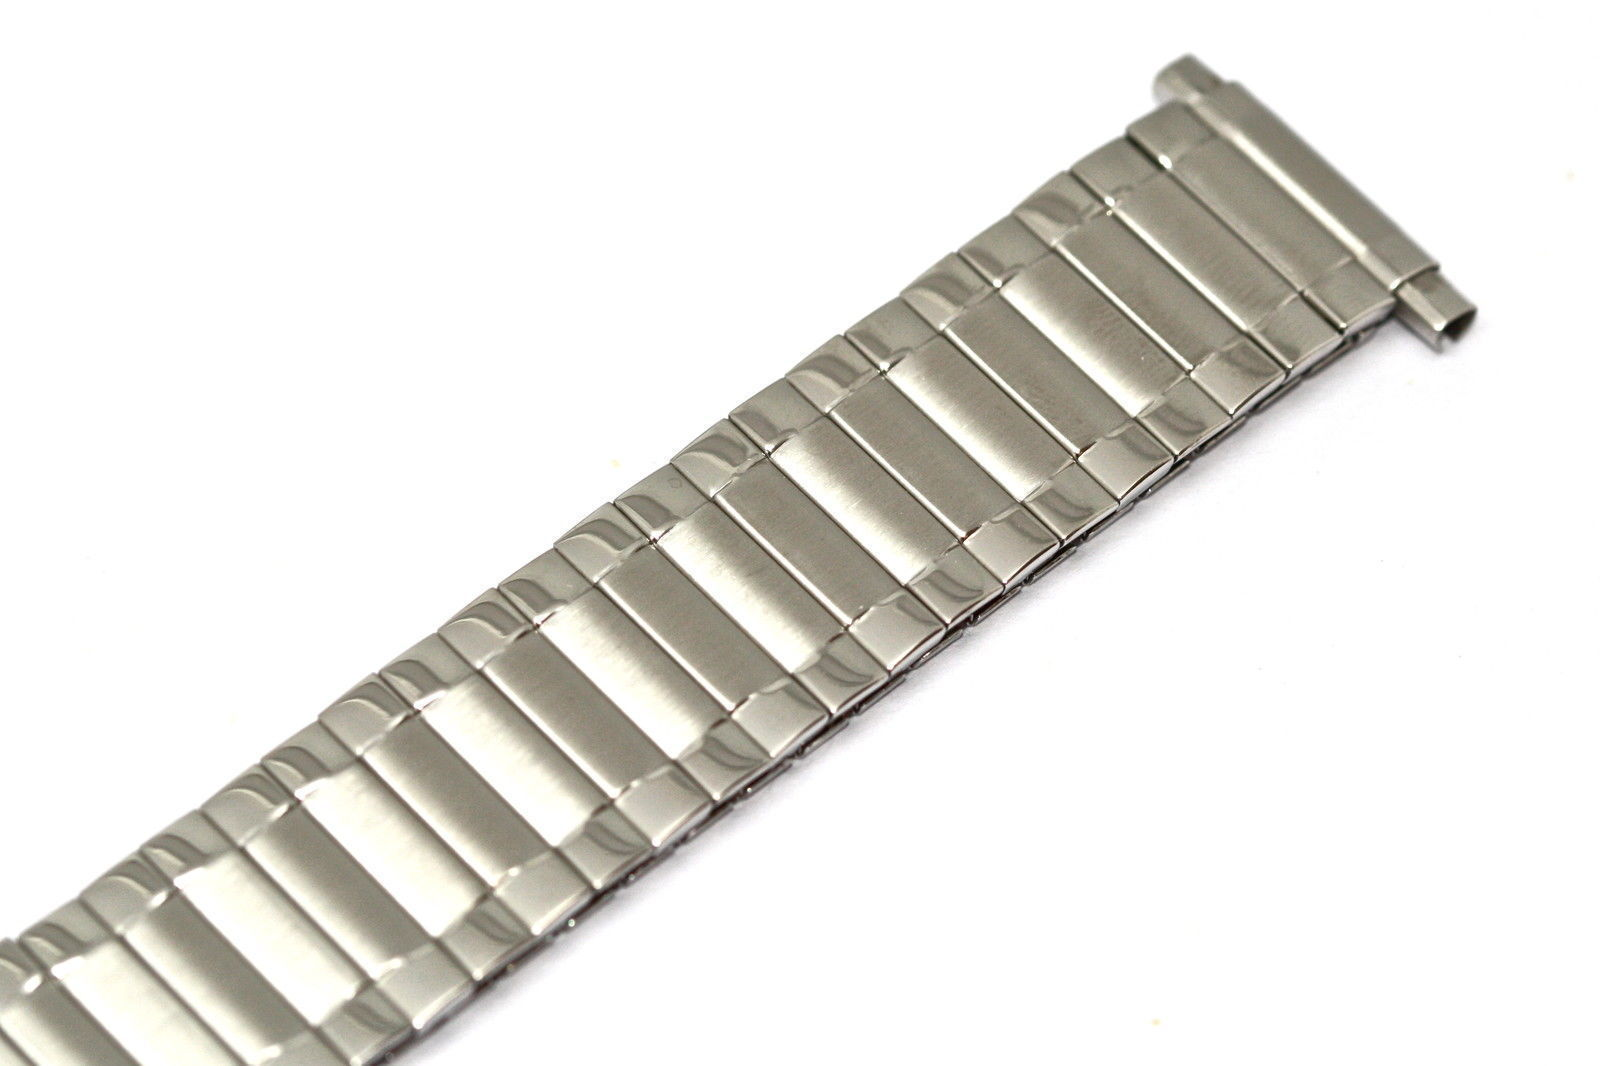 16-22mm Extra Long Silver Radial Expansion Watch Band Strap CHOOSE YOUR SIZE!